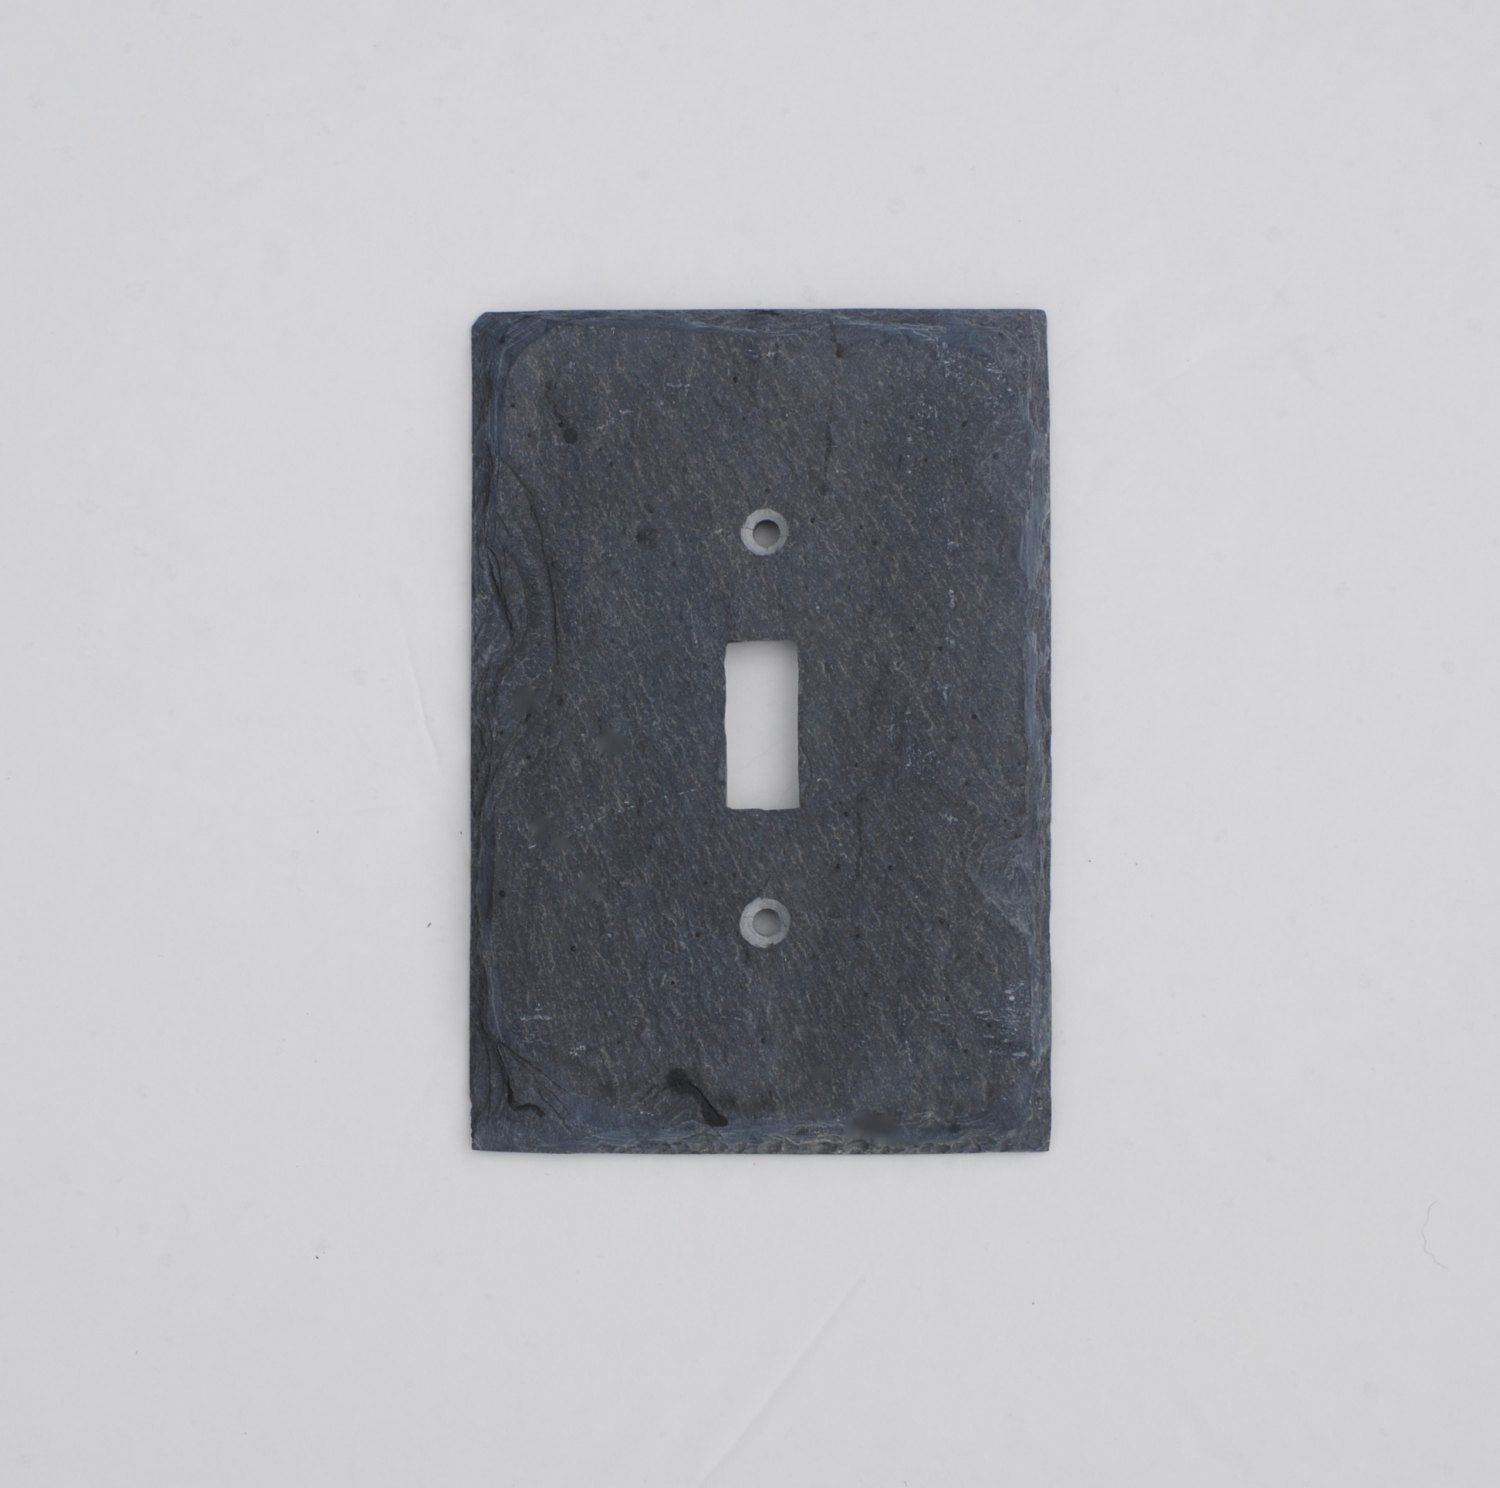 Decorative Light Switch Wall Plates Brilliant Decorative Light Switch Cover Switch Plate Wall Plate Rustic Design Ideas